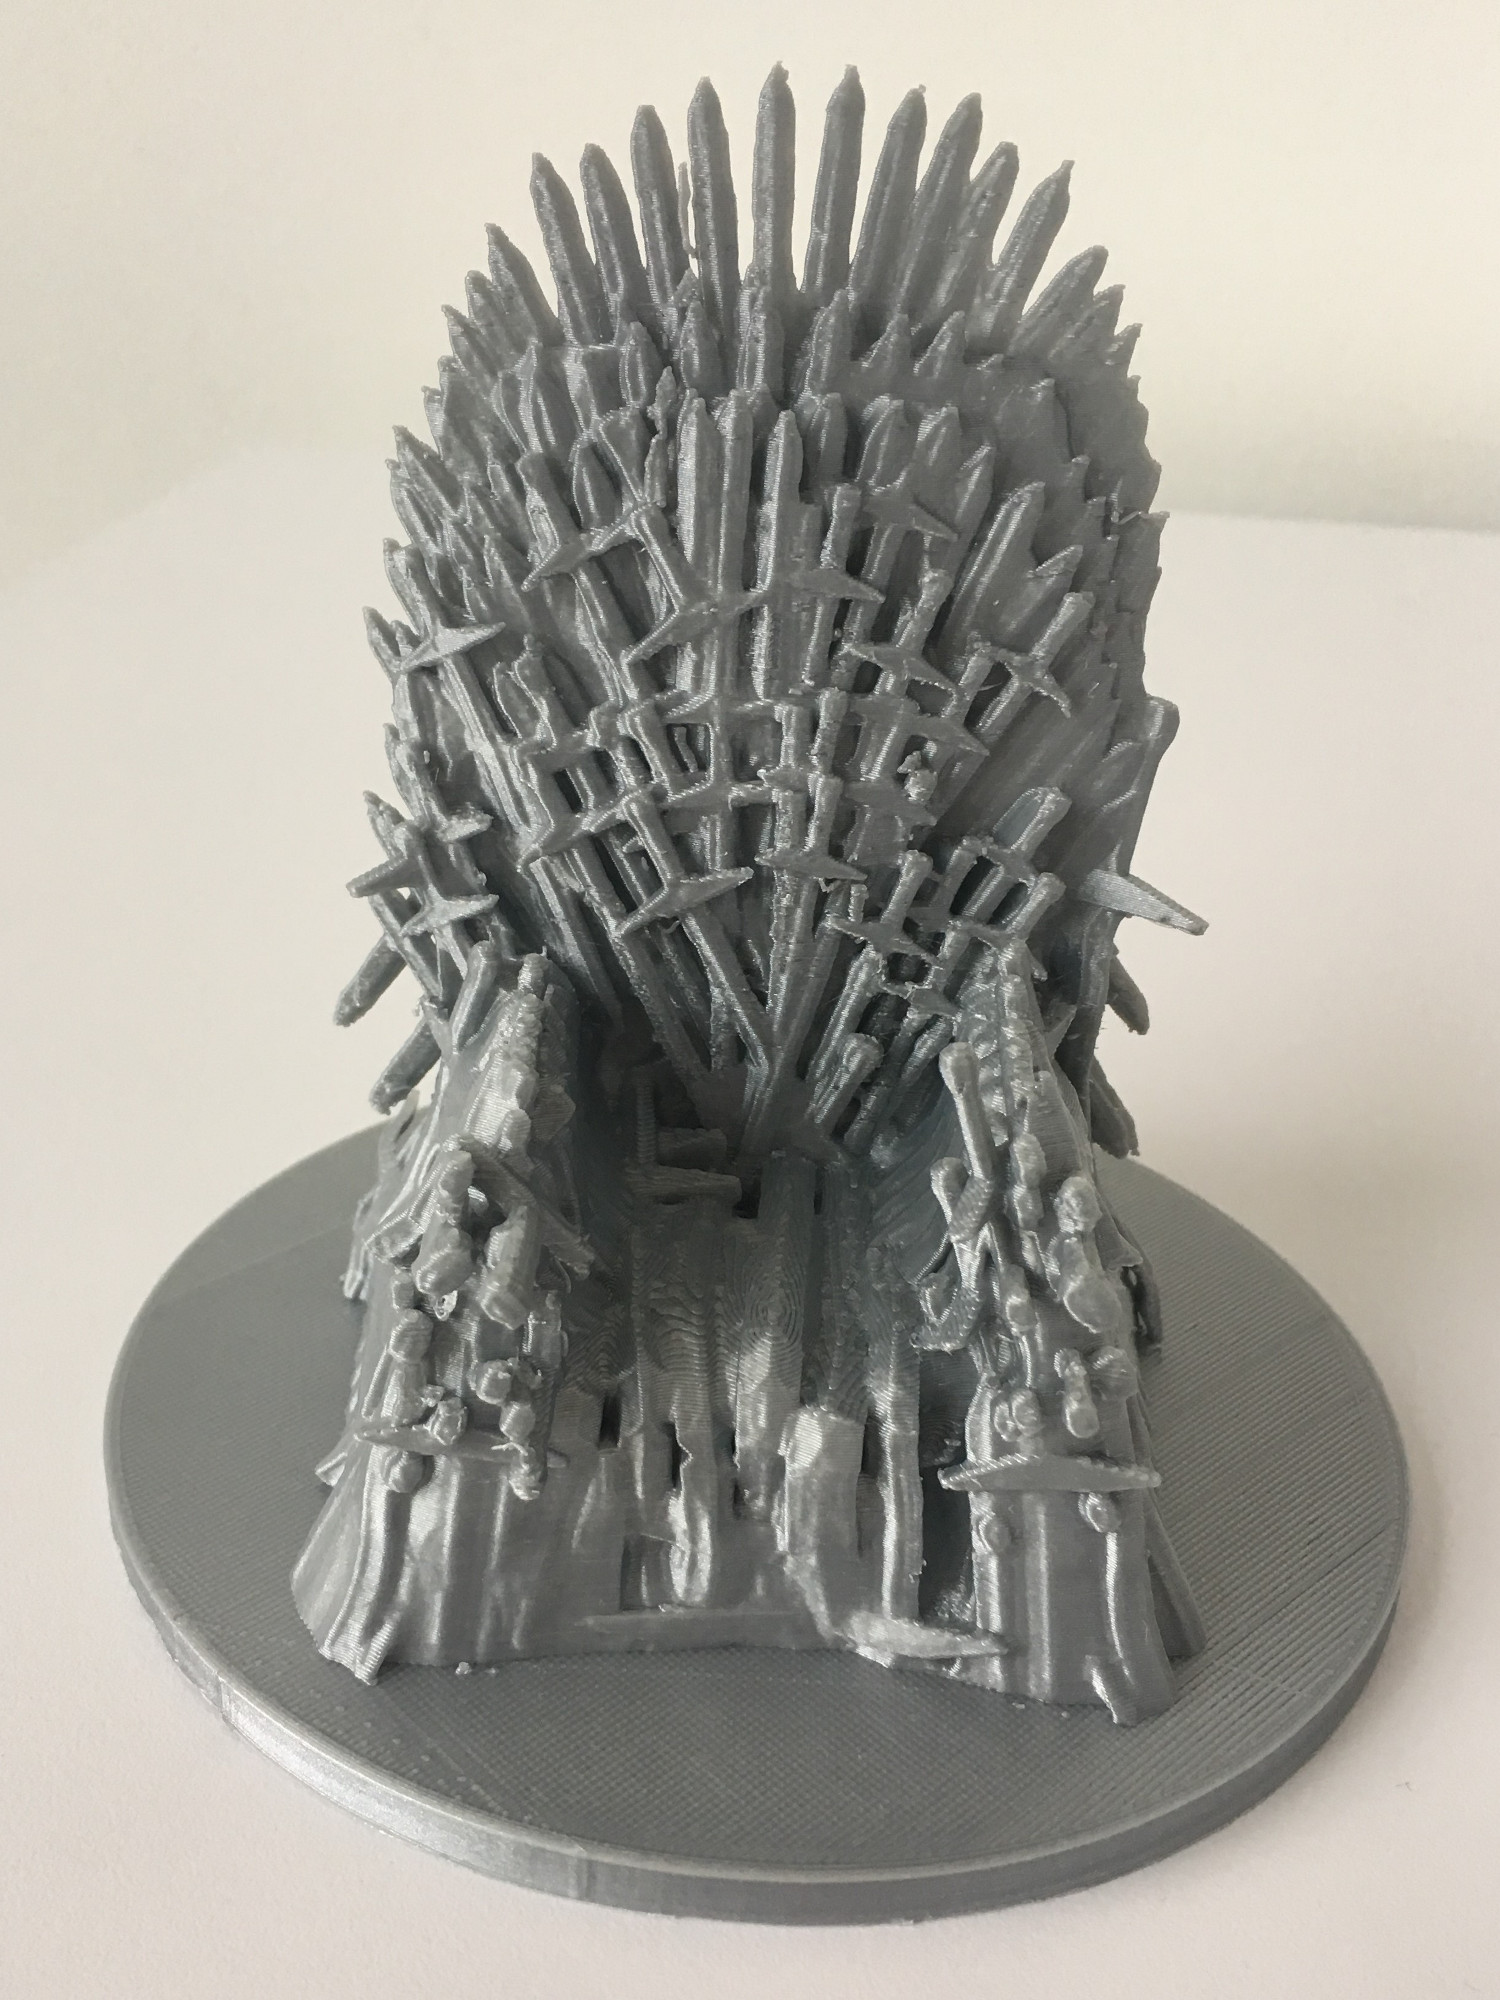 Silver 3D print of the Iron Throne from Game of Thrones